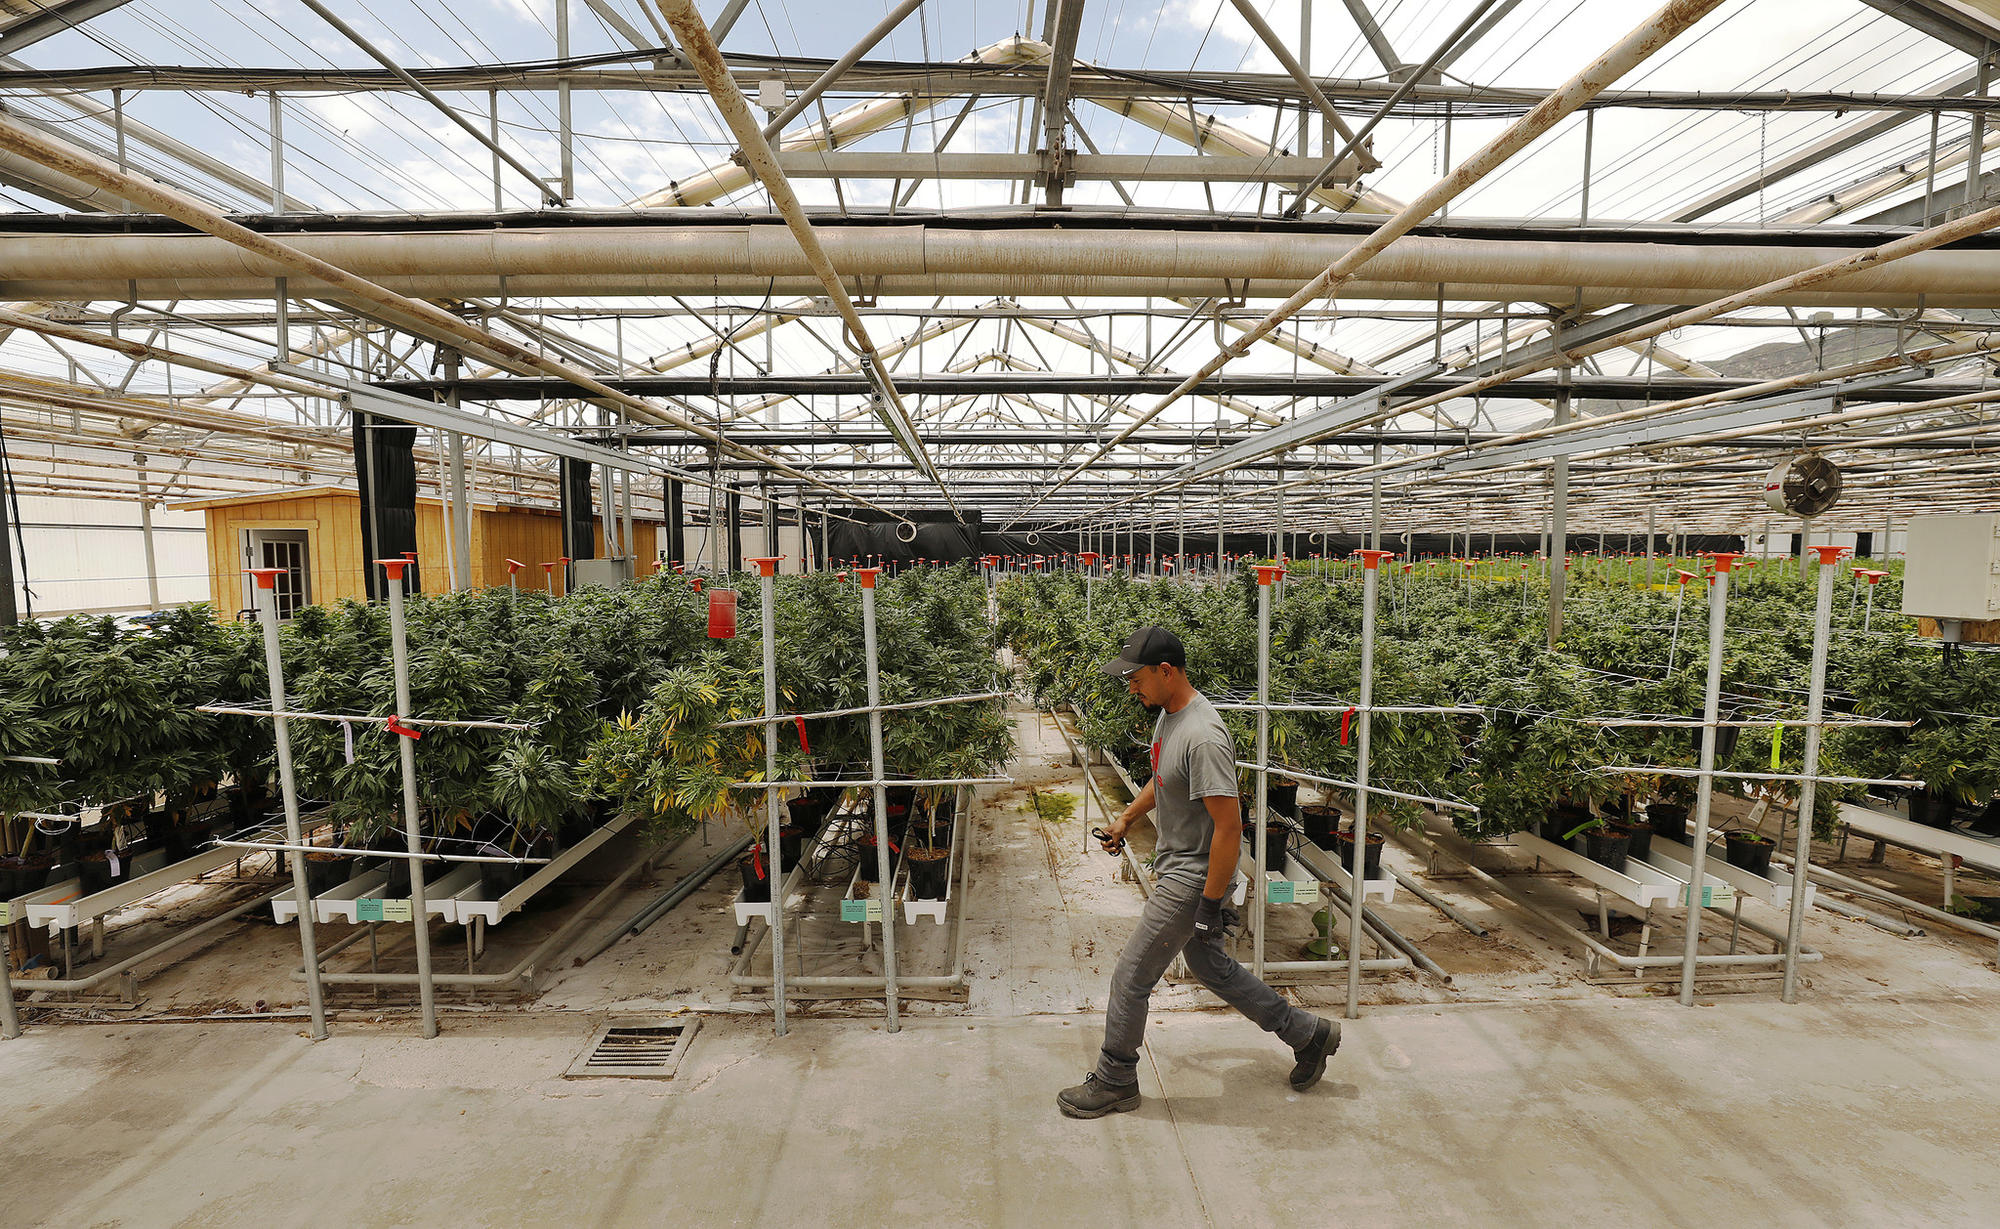 The world's largest pot farms, and how Santa Barbara opened